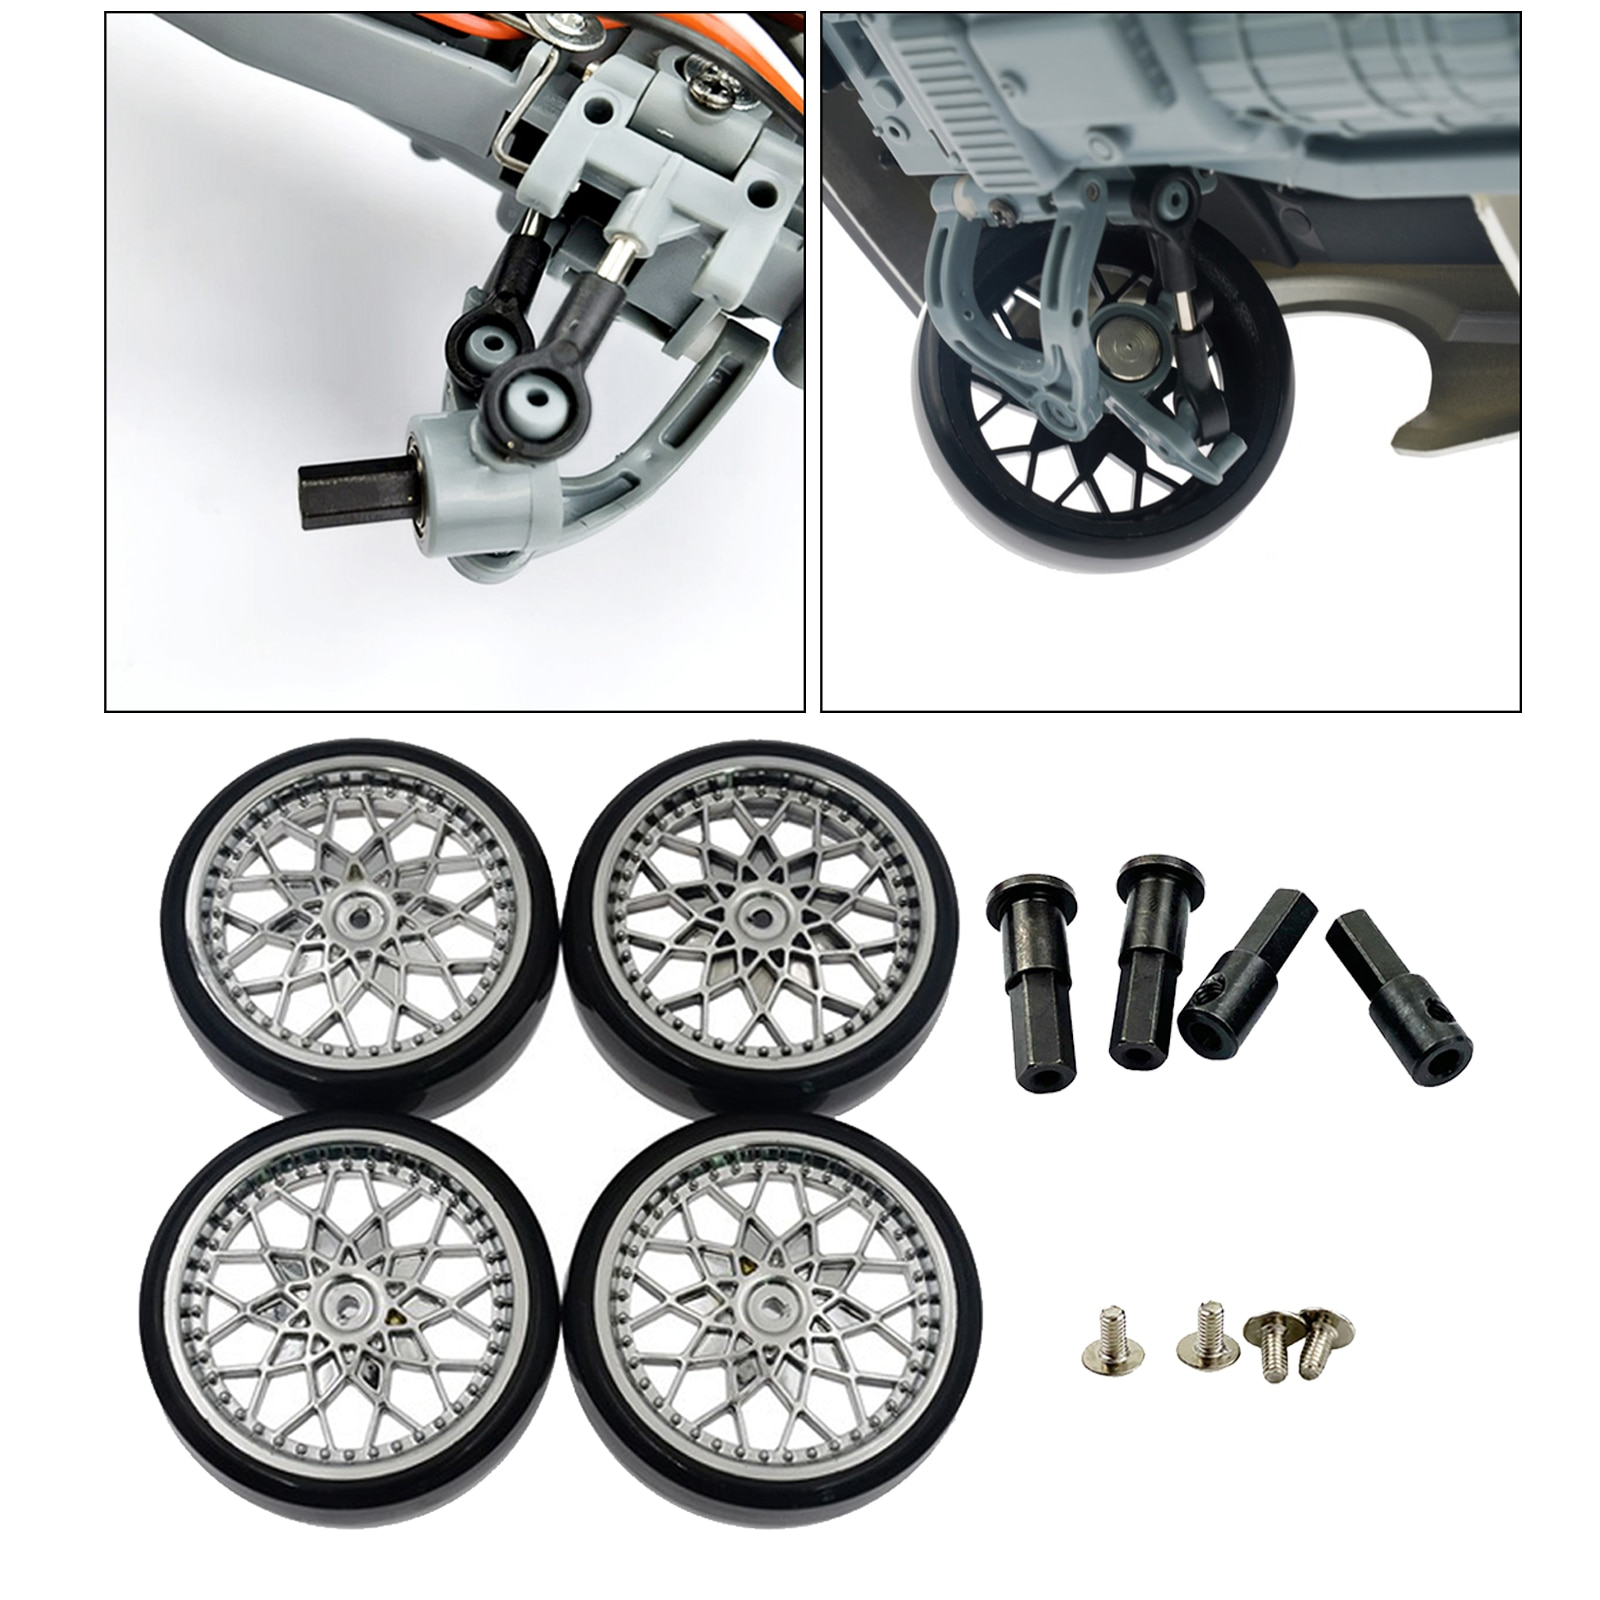 4pcs RC Rubber Tires Tyres & Wheel Axle for 1:10 WPL D12 Upgrade Parts enlarge